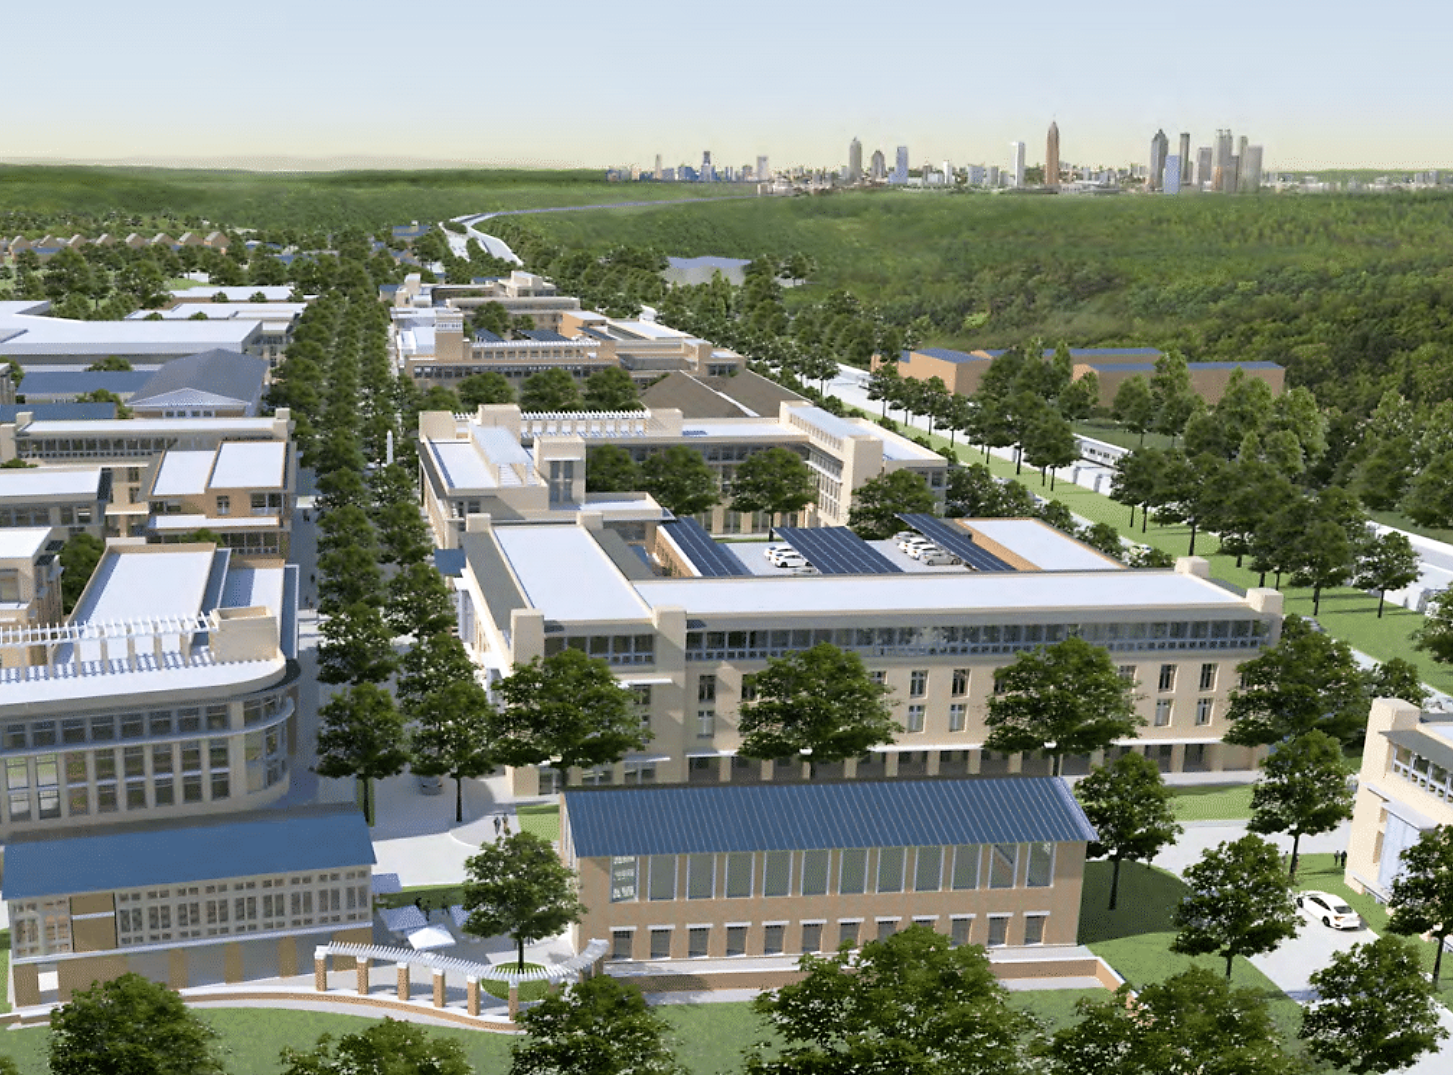 A rendering shows a vast community of new construction and adaptive reuse development in front of a sea of trees. In the Background is the Atlanta skyline.